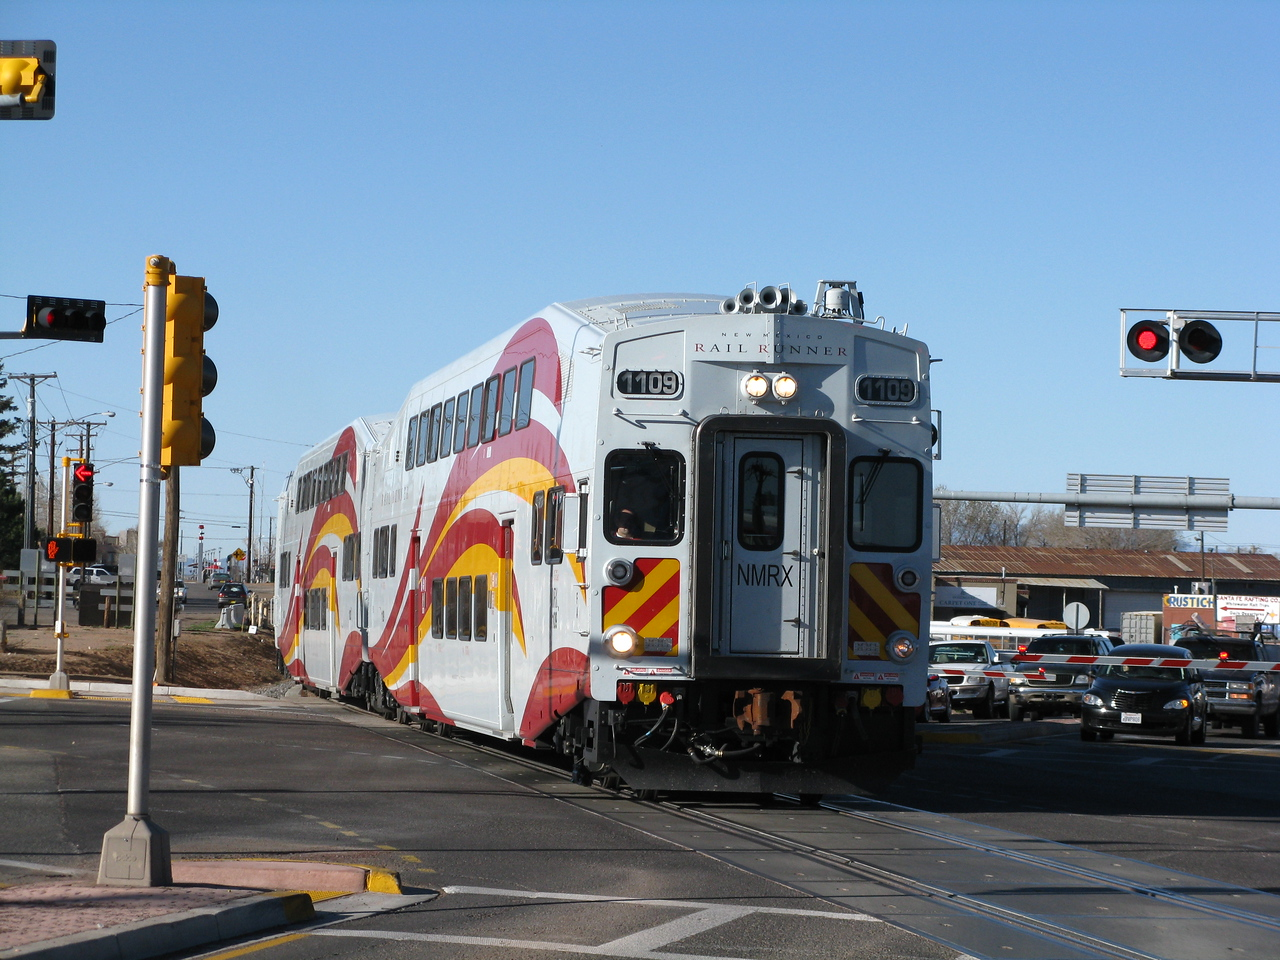 The Rail Runner train.  This commuter train runs from Santa Fe to Albuquerque.